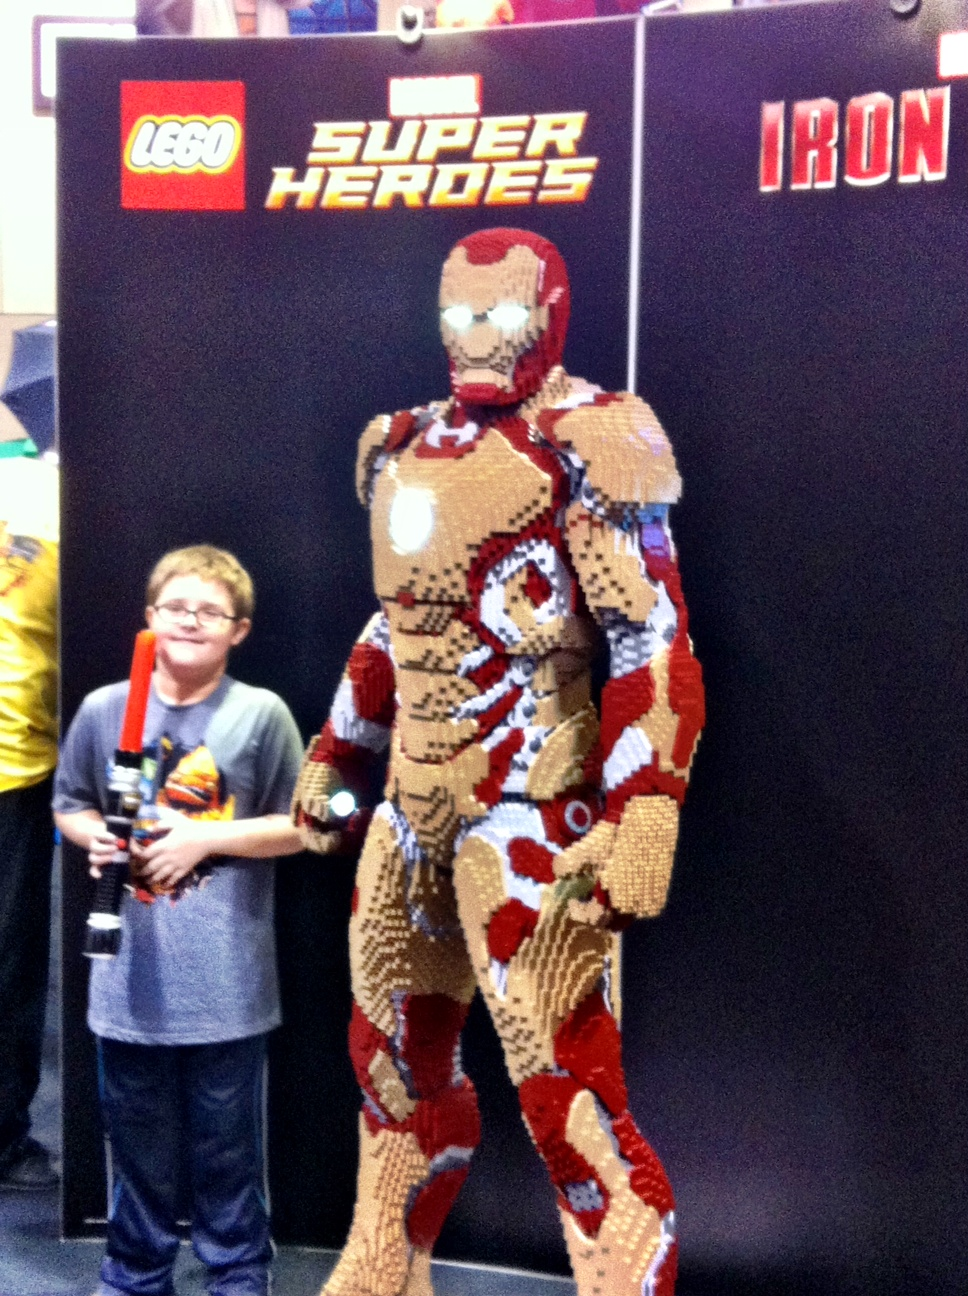 Lego people. More my speed (And yes, I purposely took advantage of another families photo op)